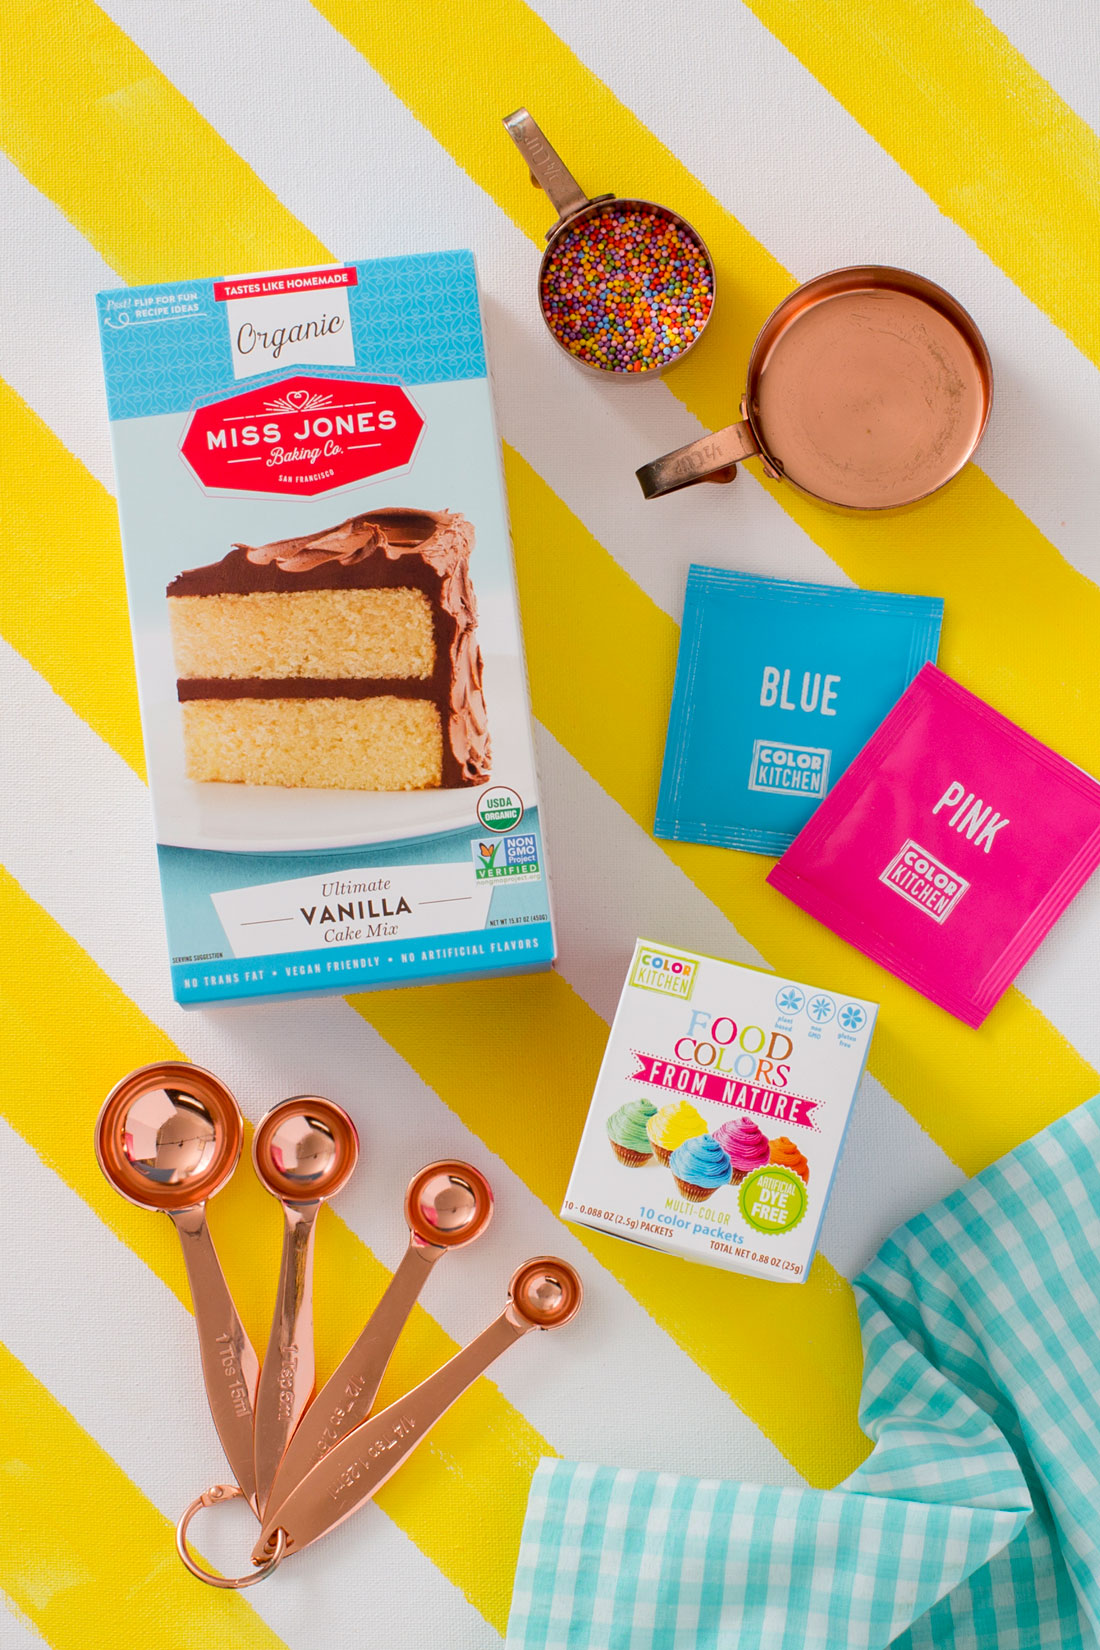 Image of a box of Miss Jones Organic Vanilla Cake Mix next to measuring spoons, a box of Food Colors From Nature, a measuring cup of sprinkles, and blue and pink Color Kitchen food dyes for Miss Jones Baking Co Naturally Dyed Rainbow Frosted Layer Cake recipe